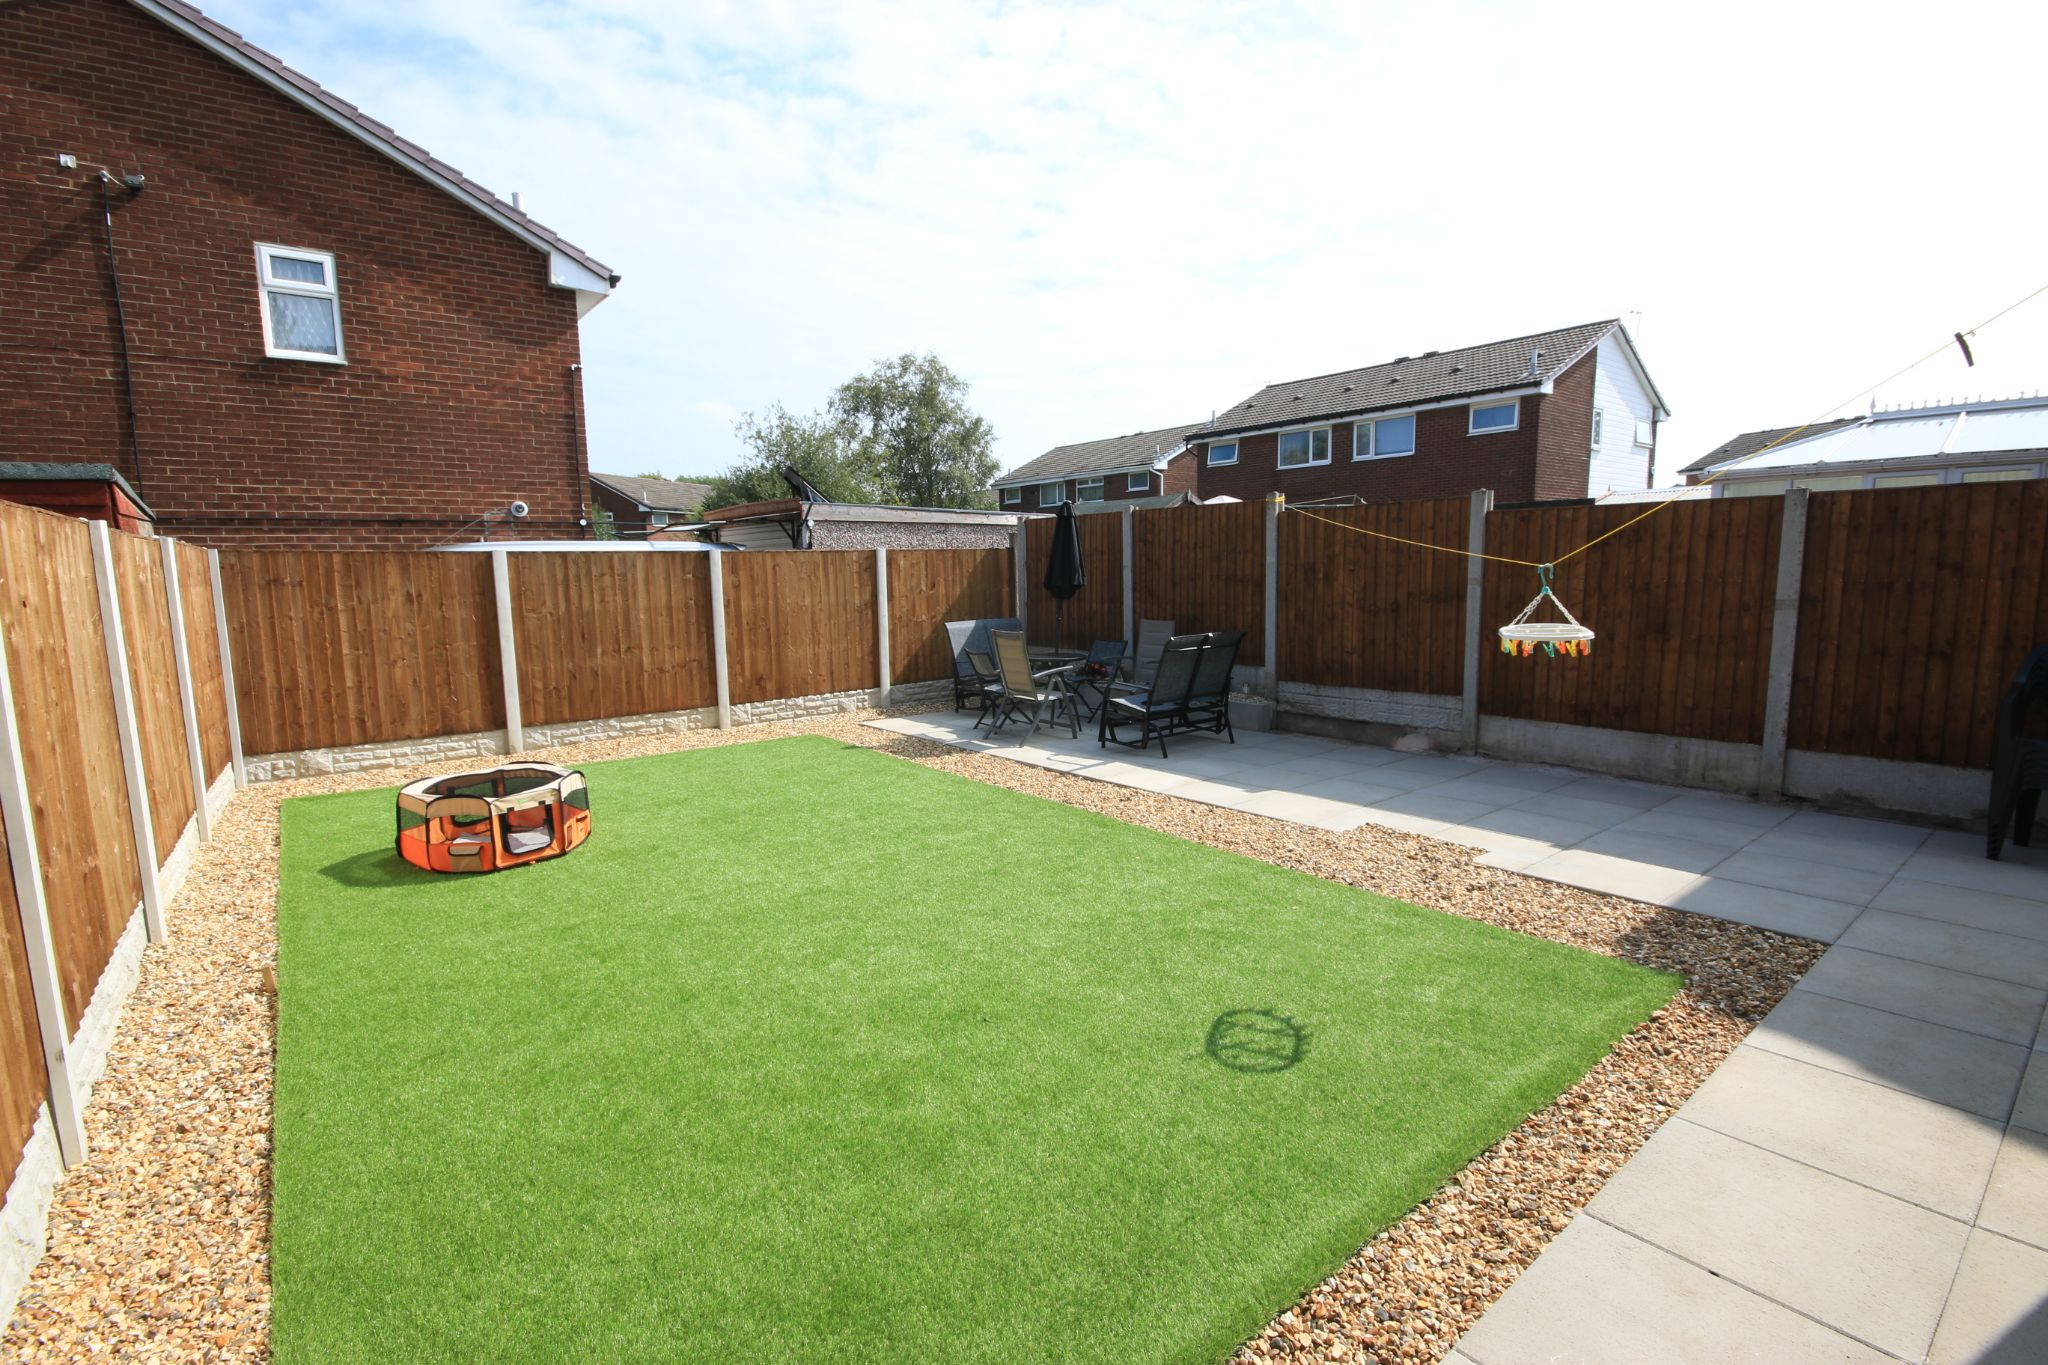 2 Bedroom Semi-detached House For Sale - Photograph 12